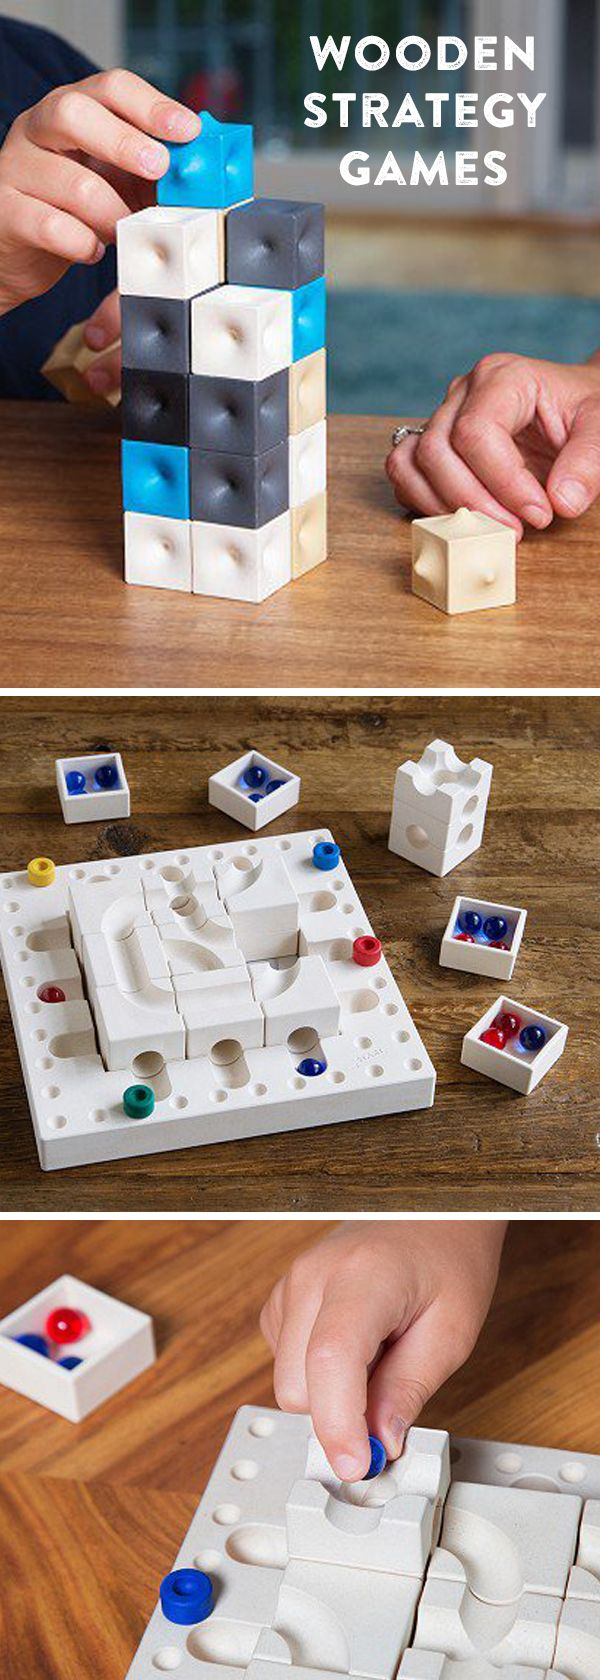 Outwit your opponent with strategy and spatial skills. Sustainably made, these games have a universal appeal and sculptural, timeless design. Great for family game night.